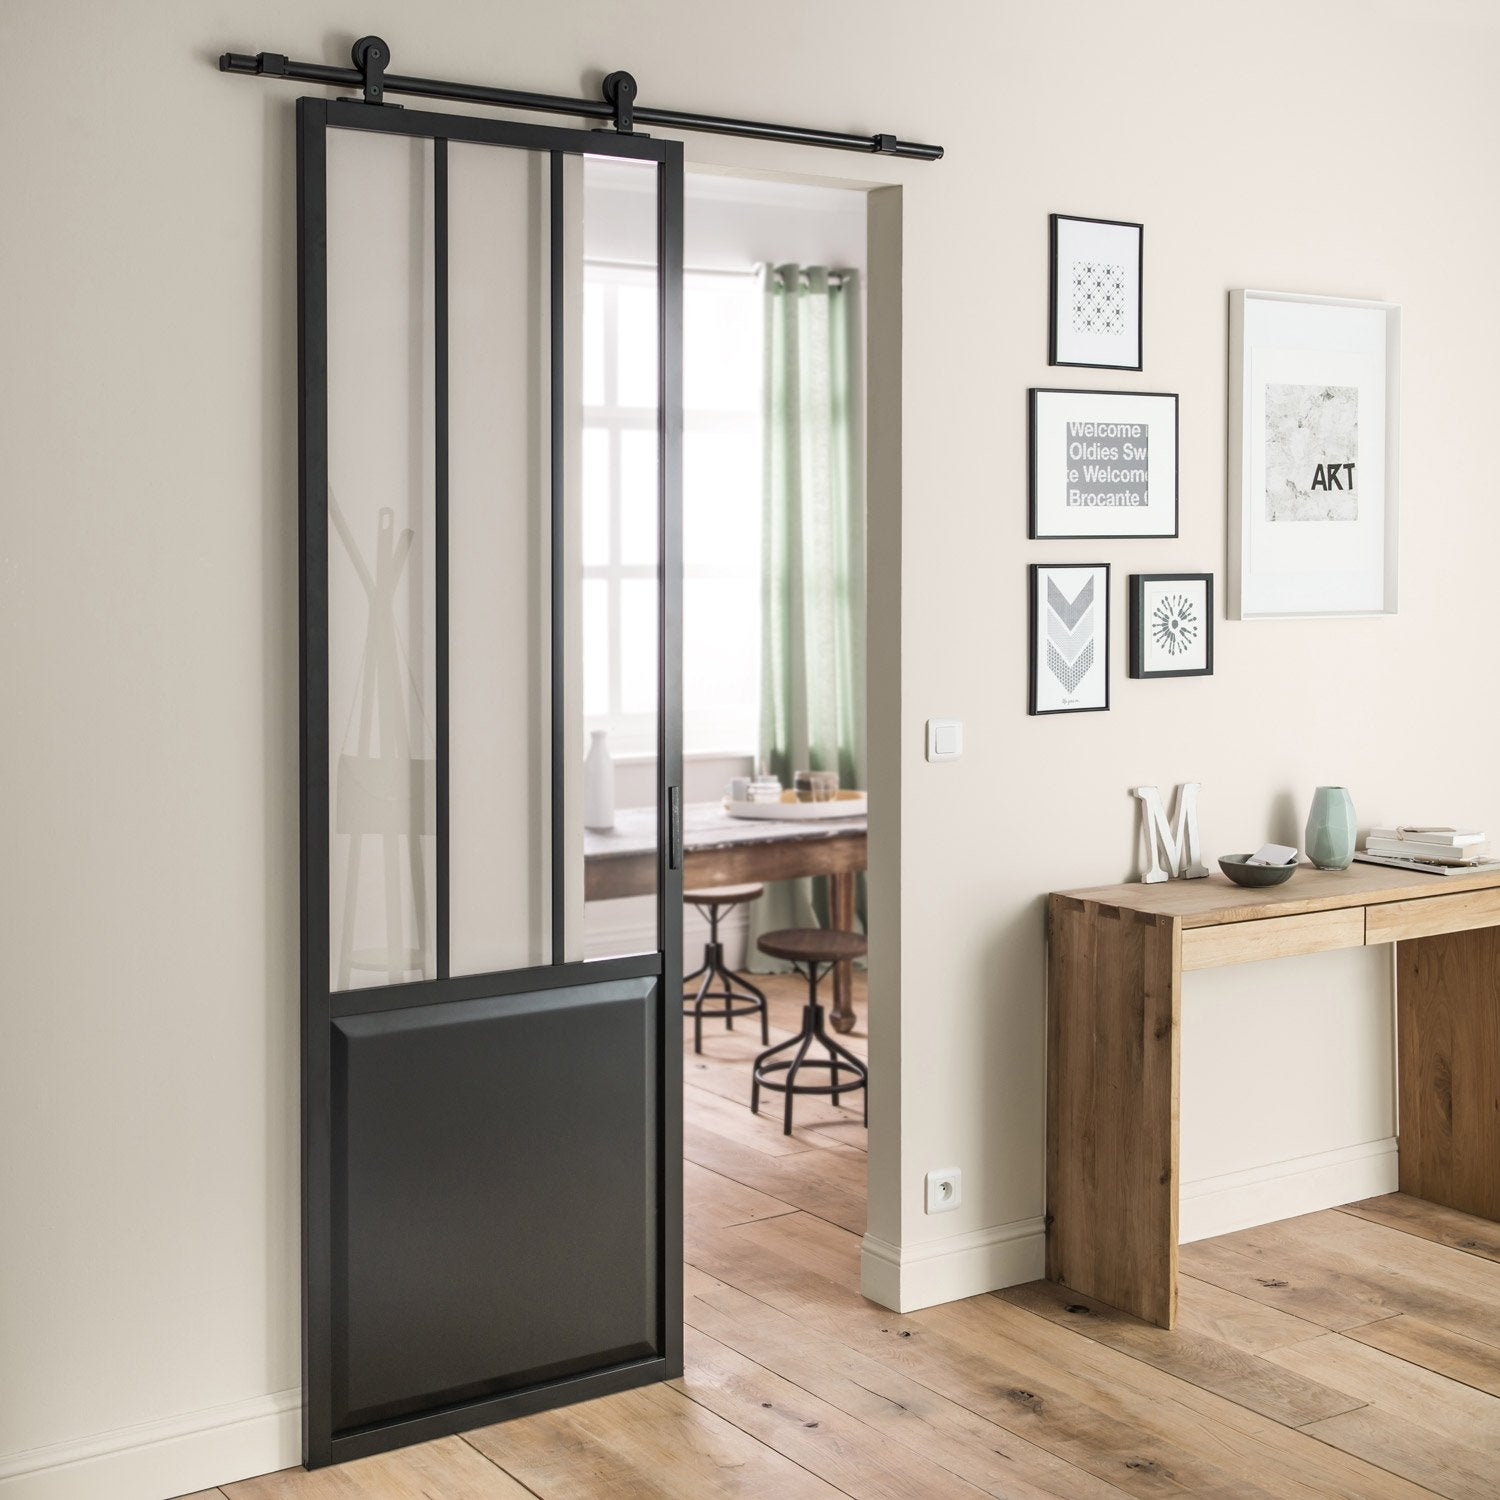 Ensemble porte coulissante atelier mdf rev tu avec le rail for Miroir atelier leroy merlin